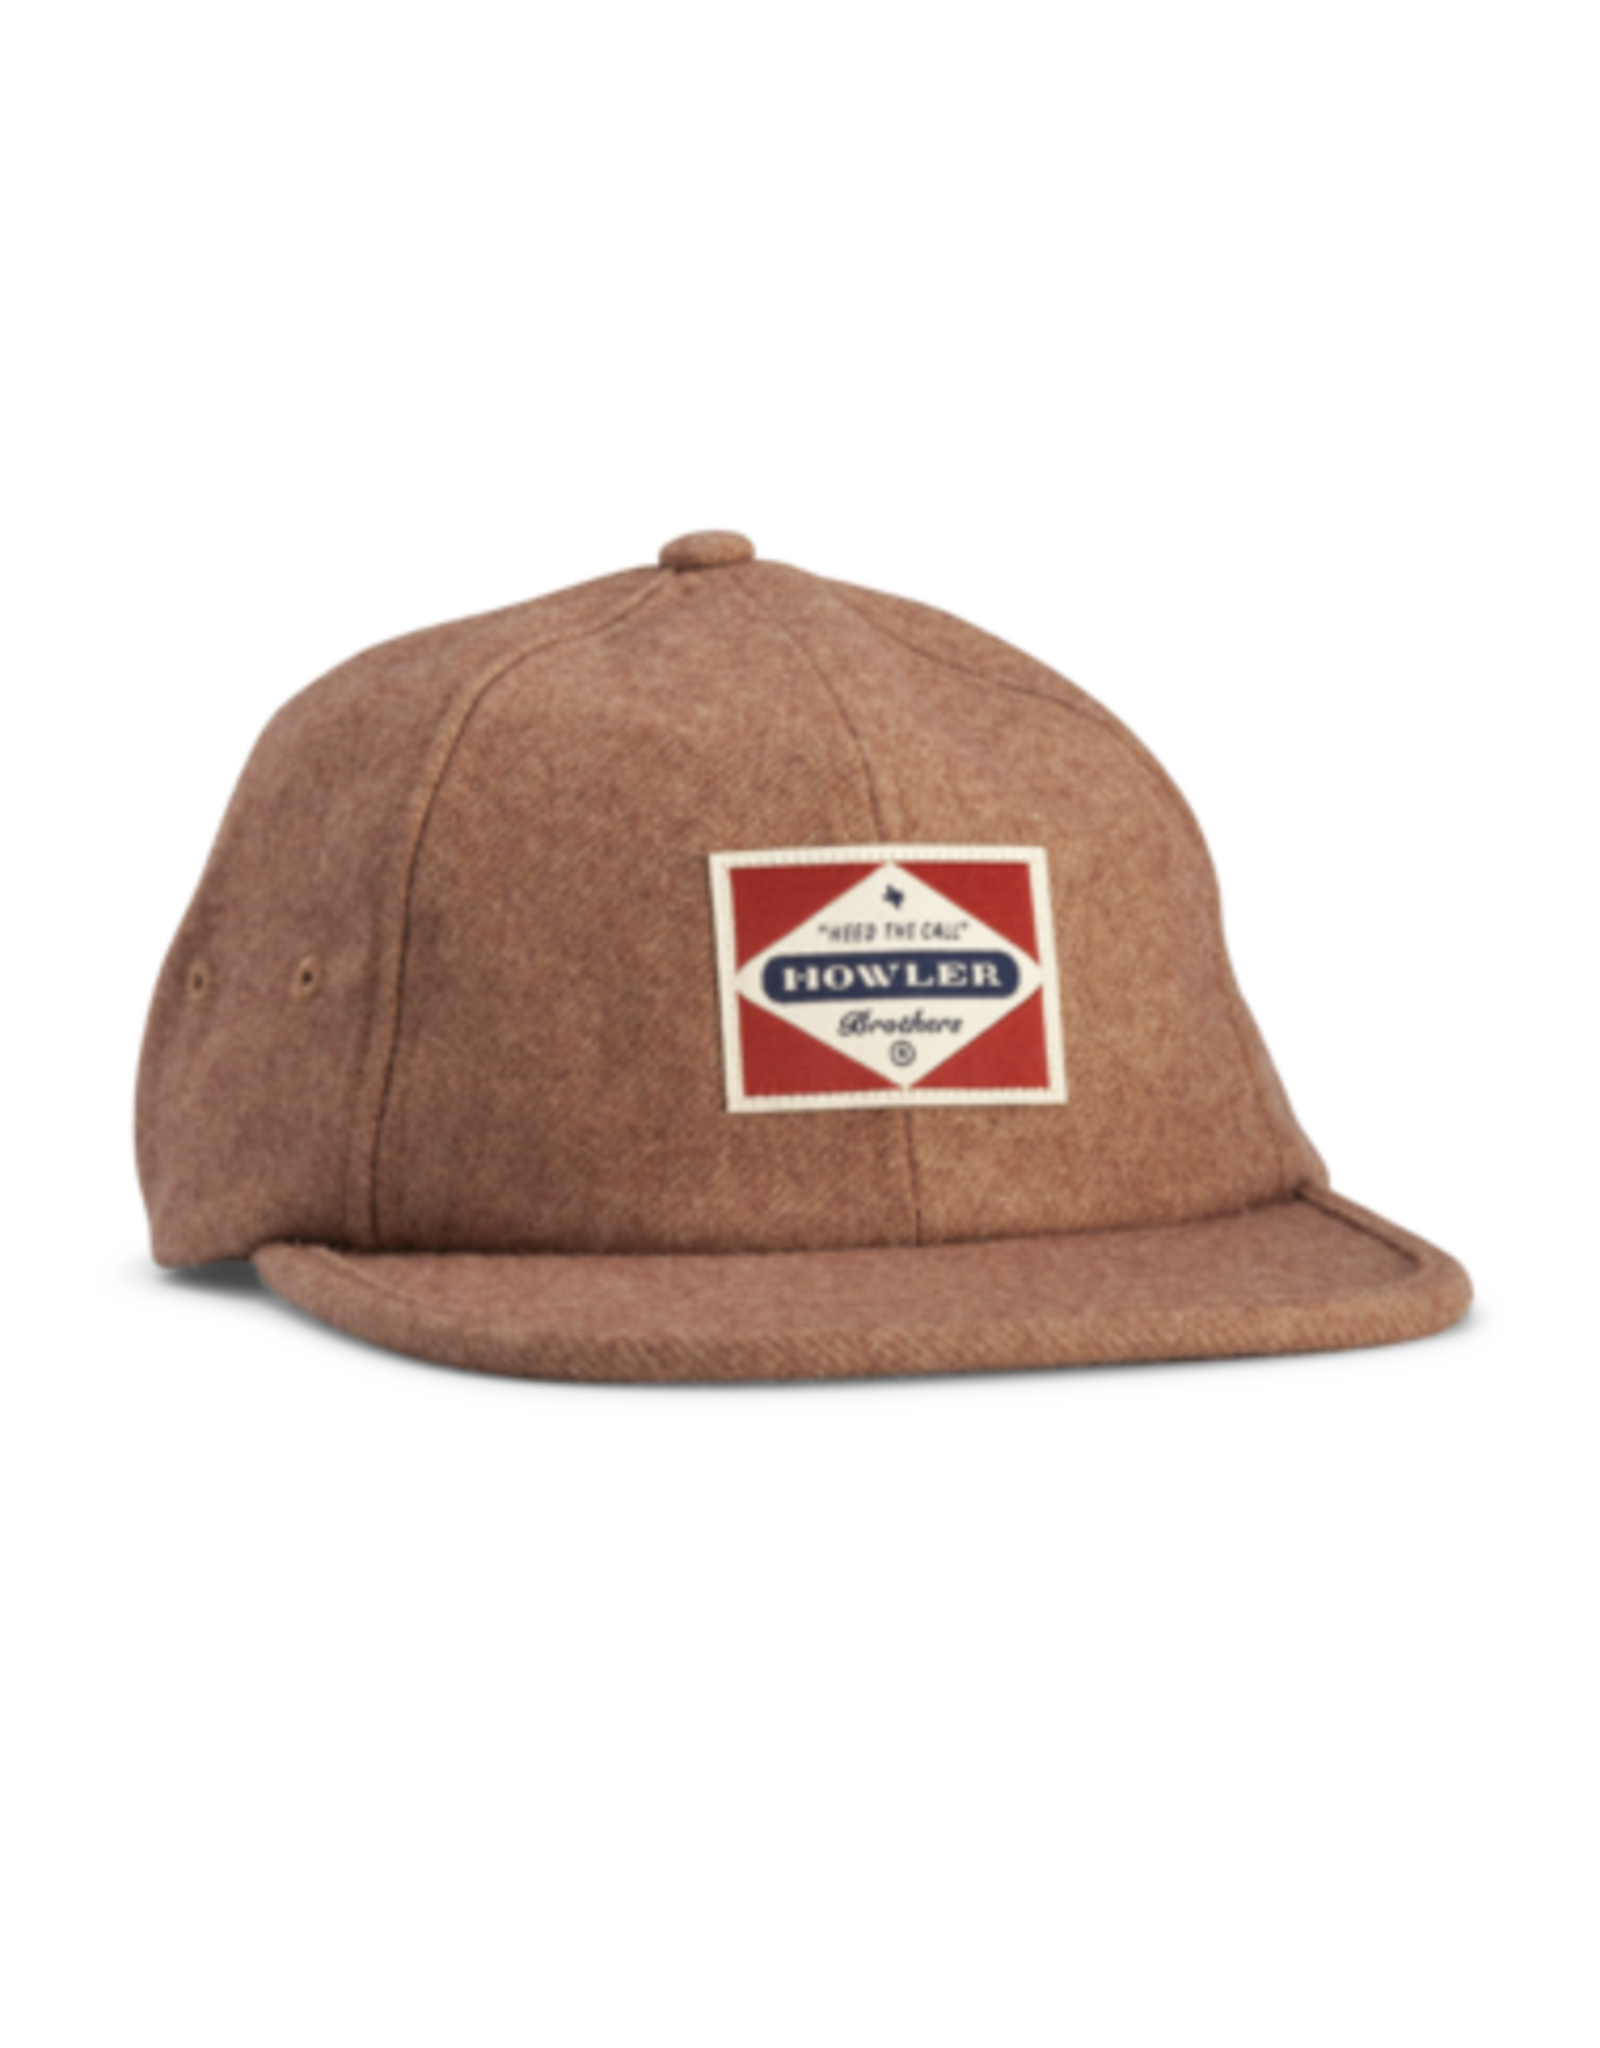 Howler Bros HB Posse Badge Strapback Cap- Tan Flannel